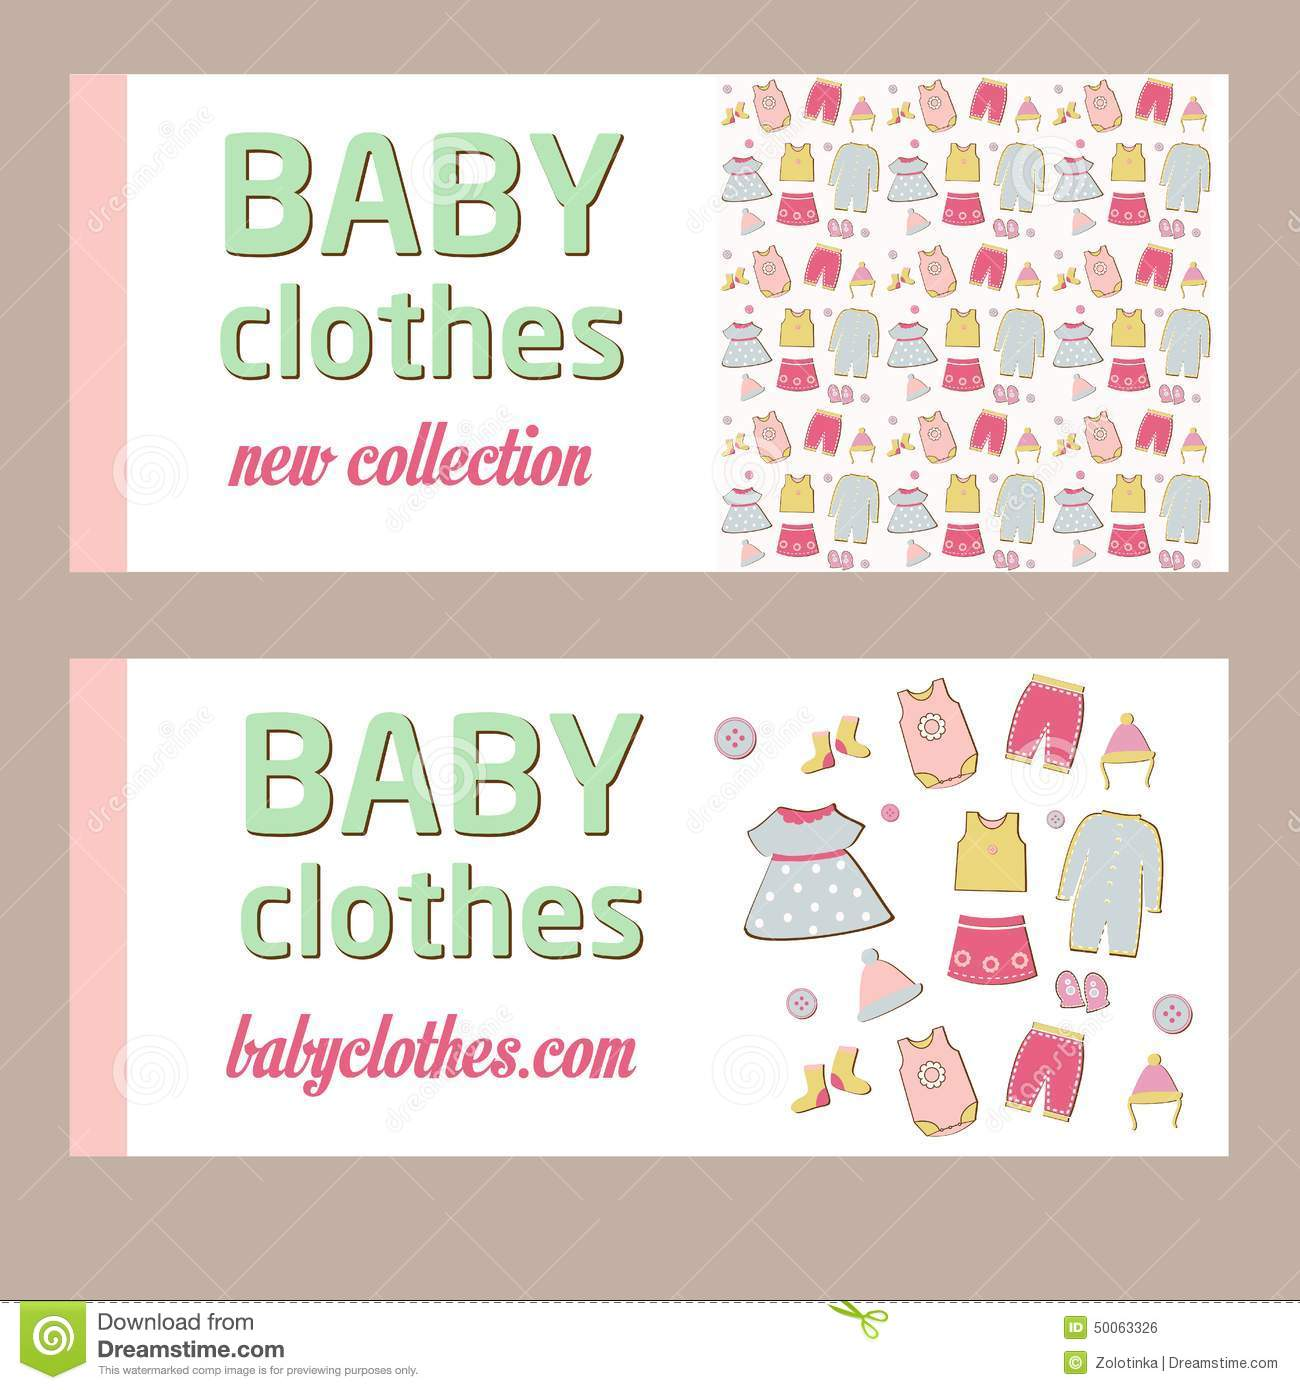 how to make a baby clothes banner